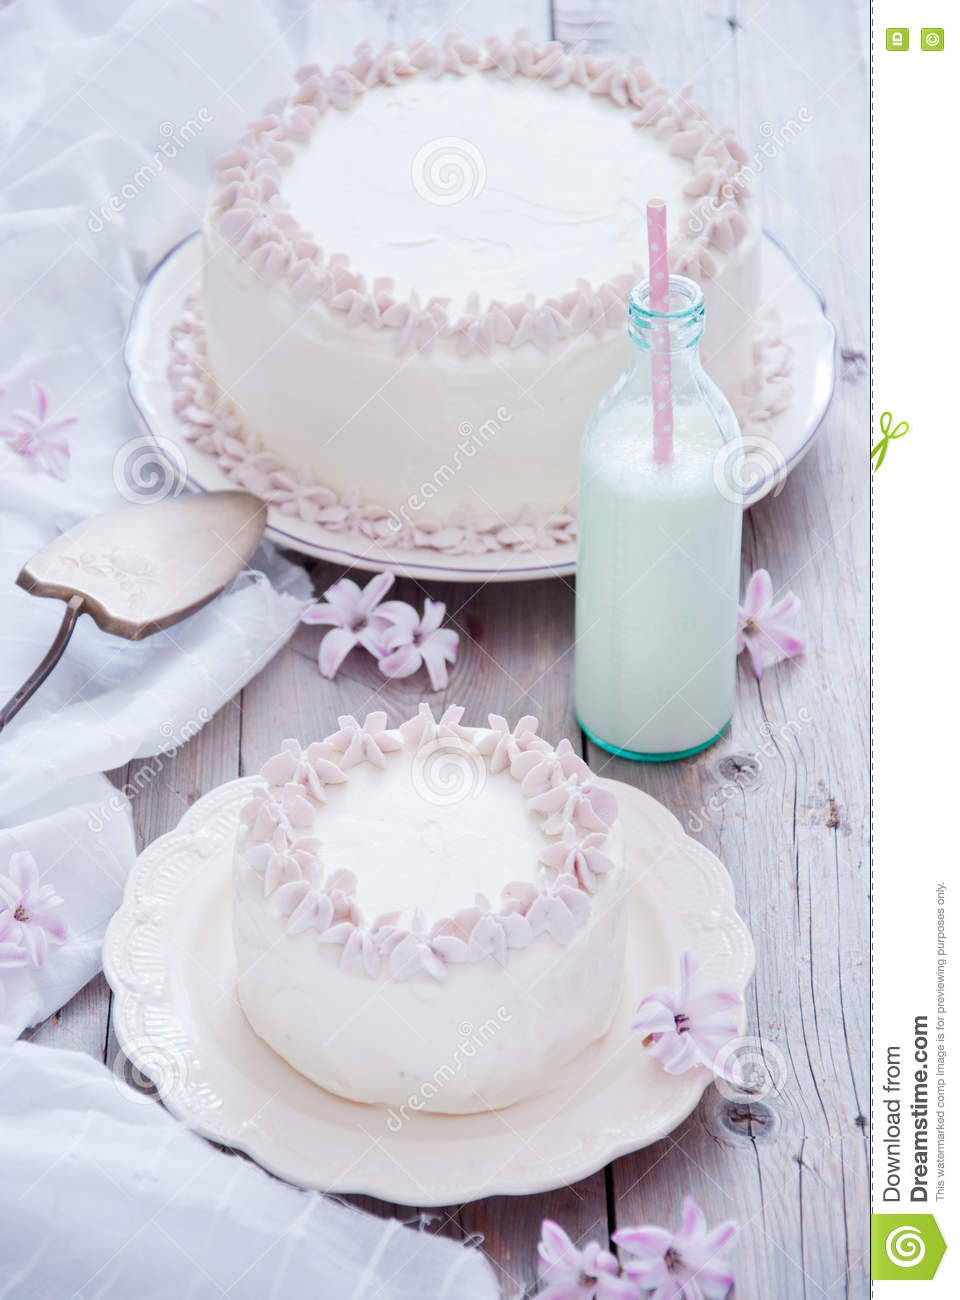 White cake with pink flowers stock photo image of icing download white cake with pink flowers stock photo image of icing celebration 81282572 mightylinksfo